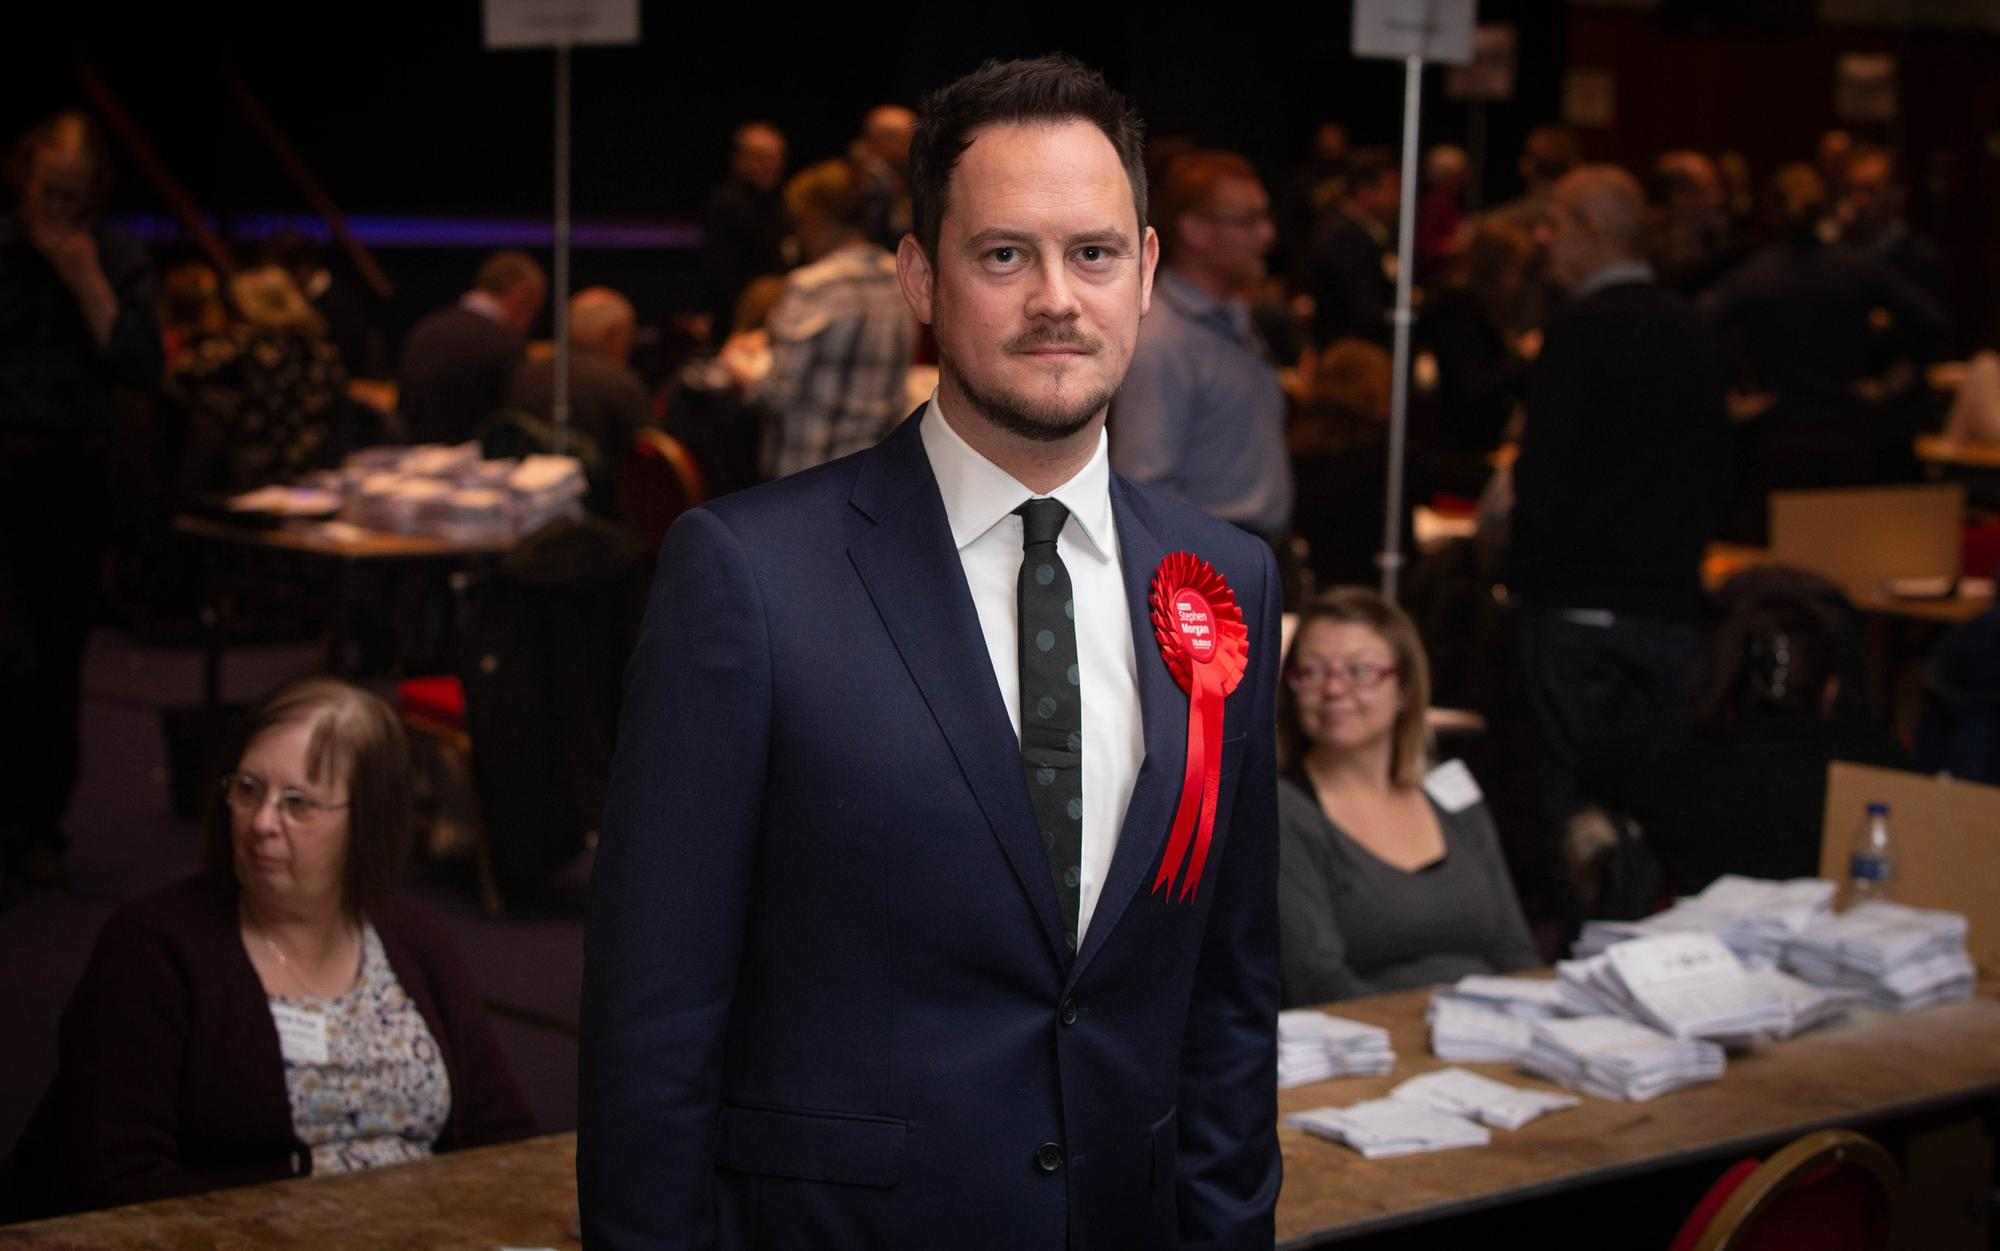 Labour candidate marches off stage in silence after Hartlepool by-election loss